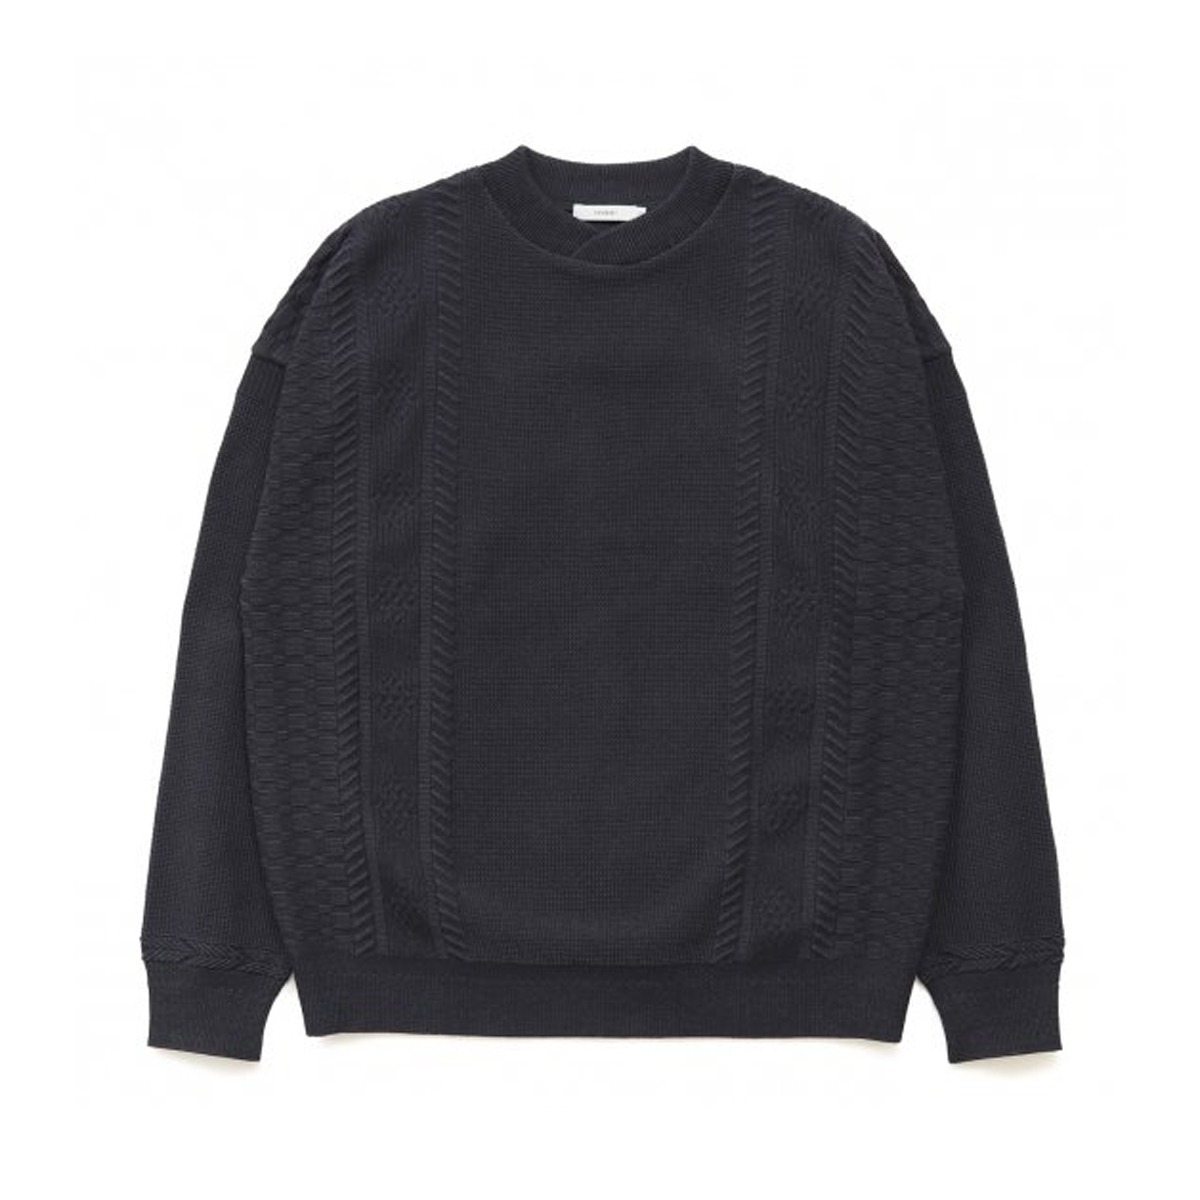 [YASHIKI] SHINGEN KNIT 'BLACK'